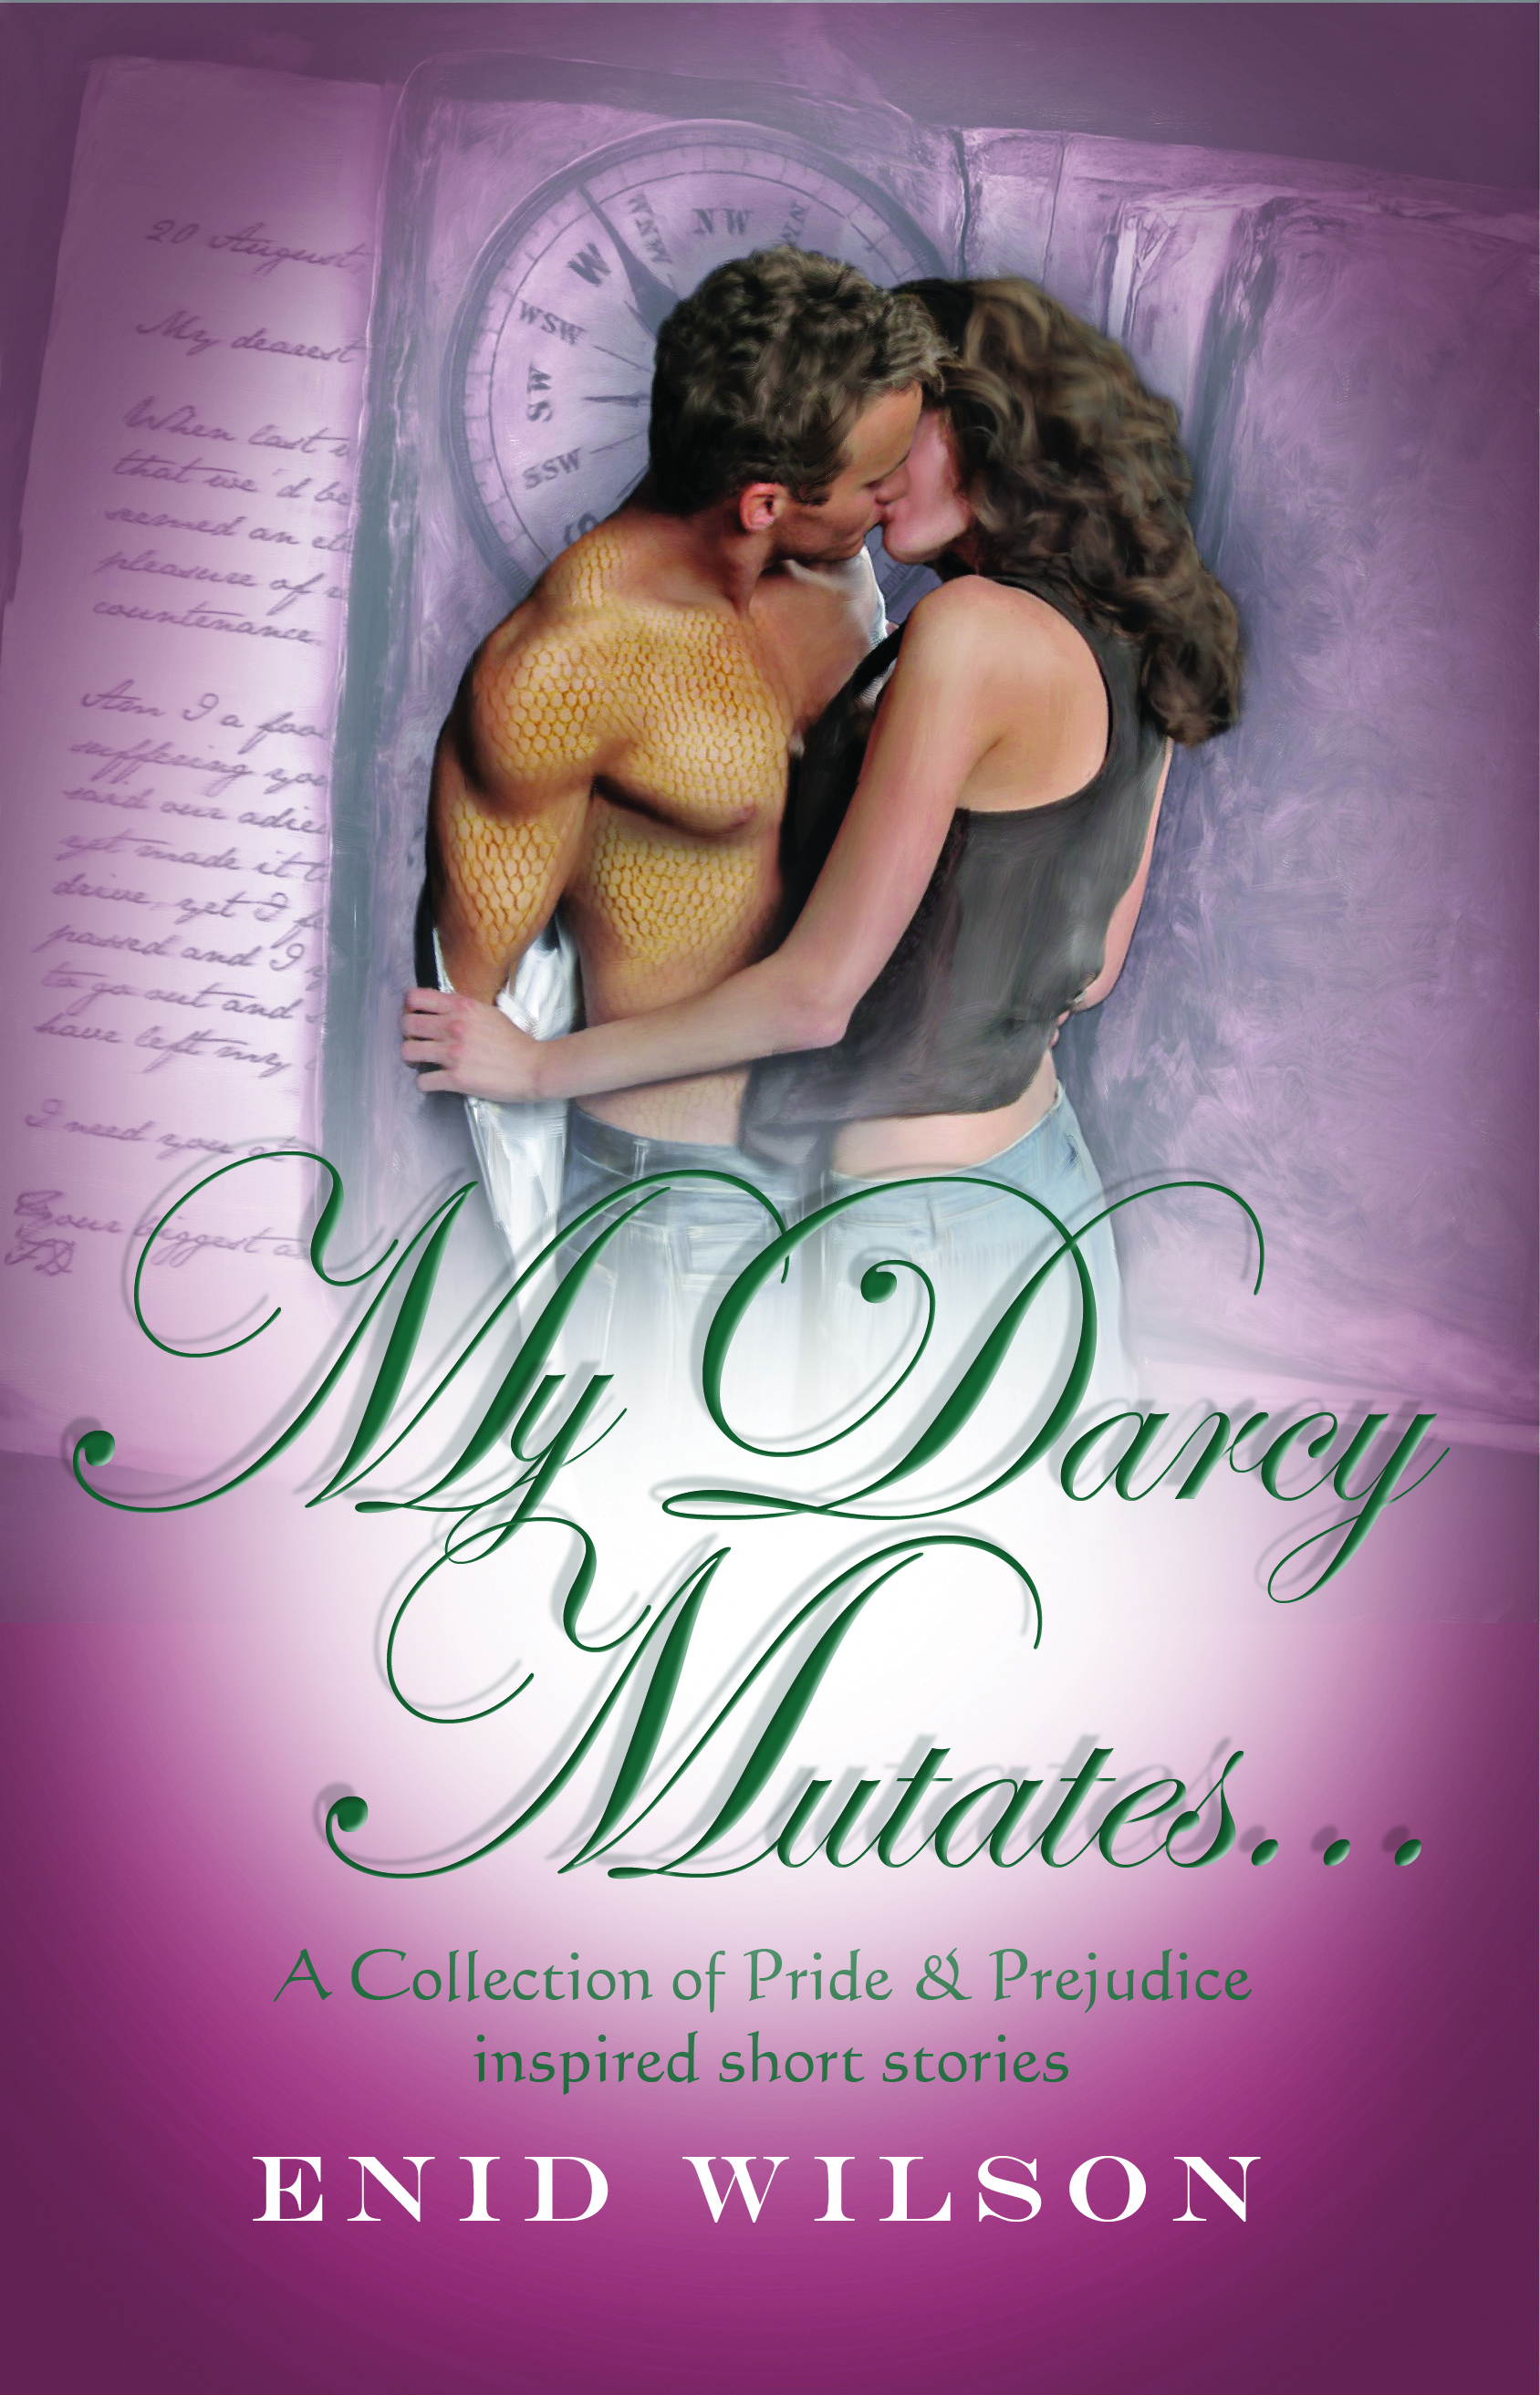 My Darcy Mutates... By: Enid Wilson